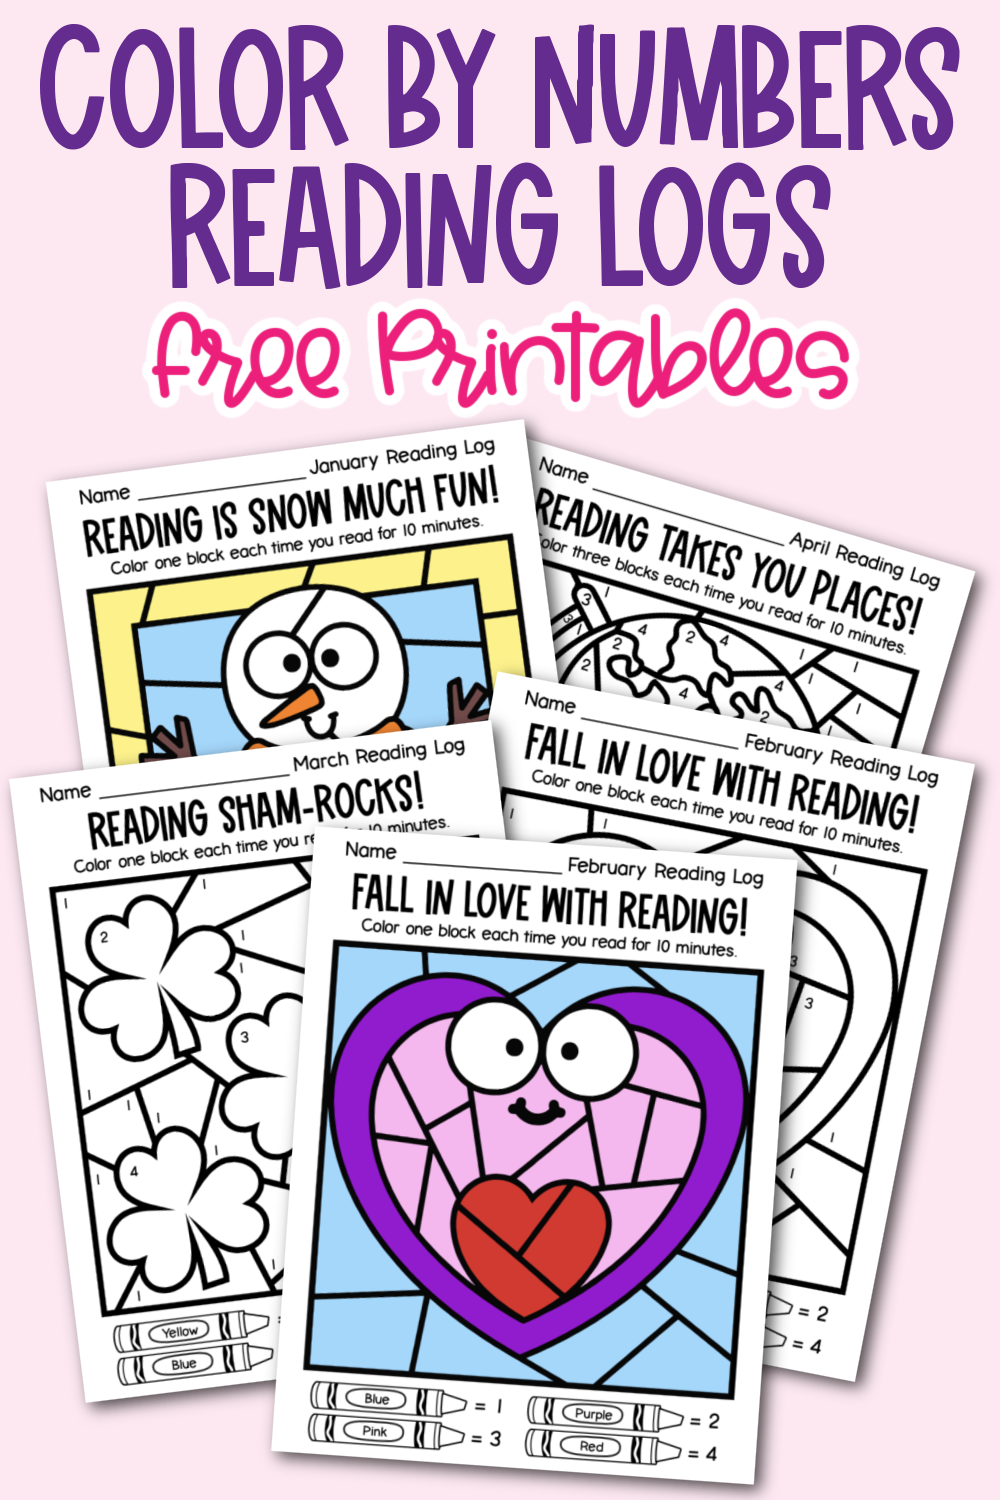 Encourage children to read with these fun and free Color by Number Reading Logs. 12 free printables to download.